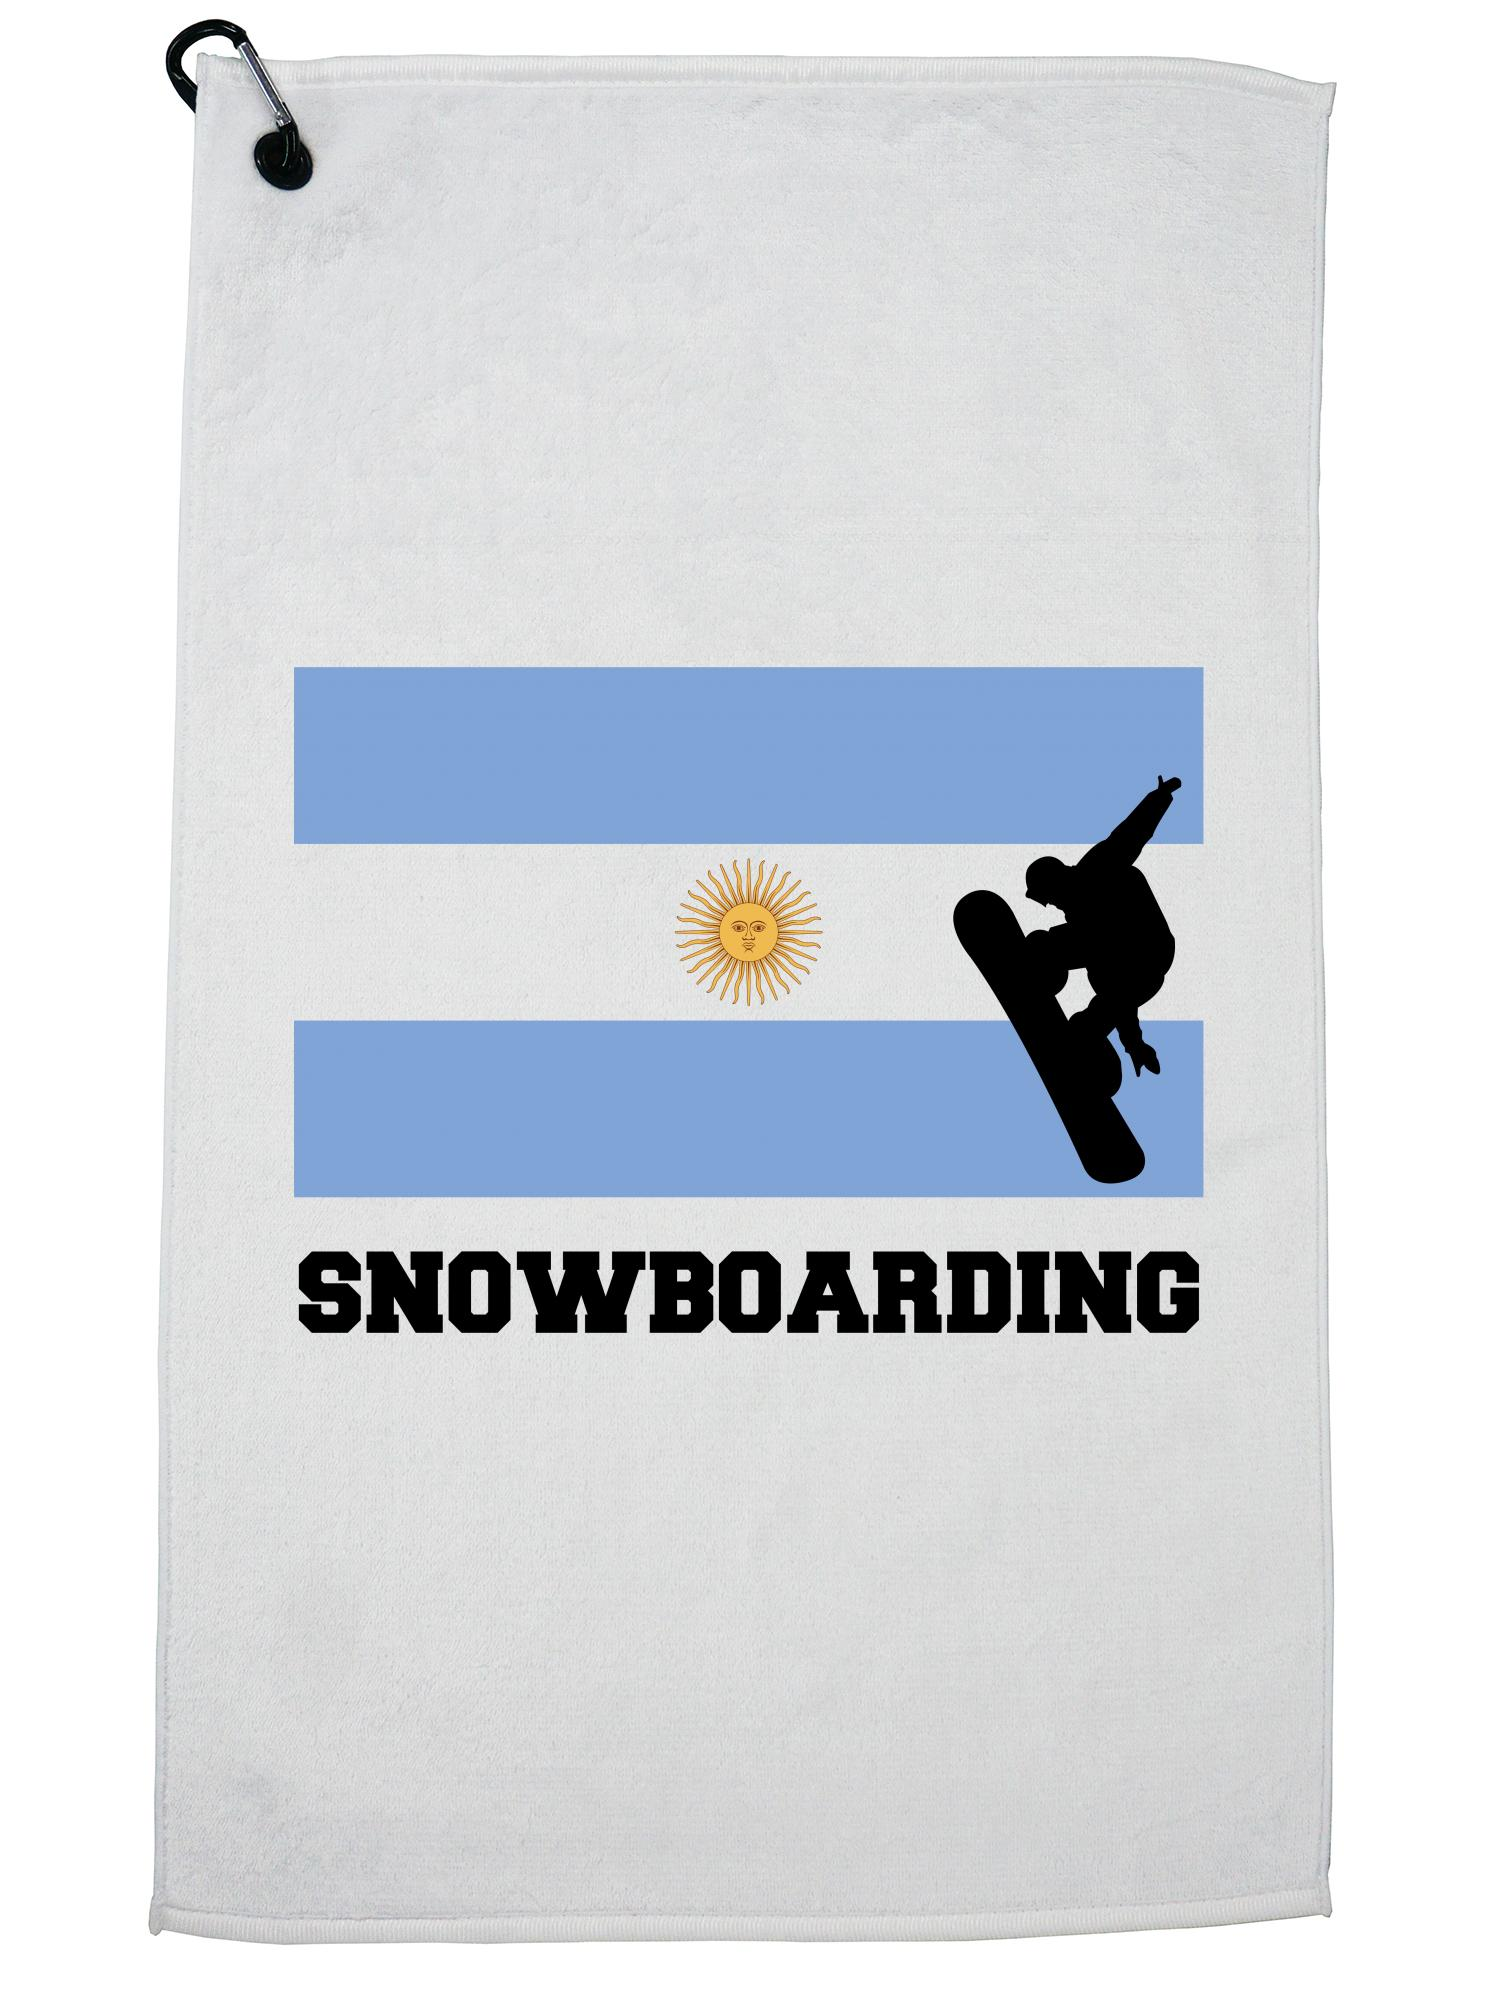 Argentina Olympic Snowboarding Flag Silhouette Golf Towel with Carabiner Clip by Hollywood Thread